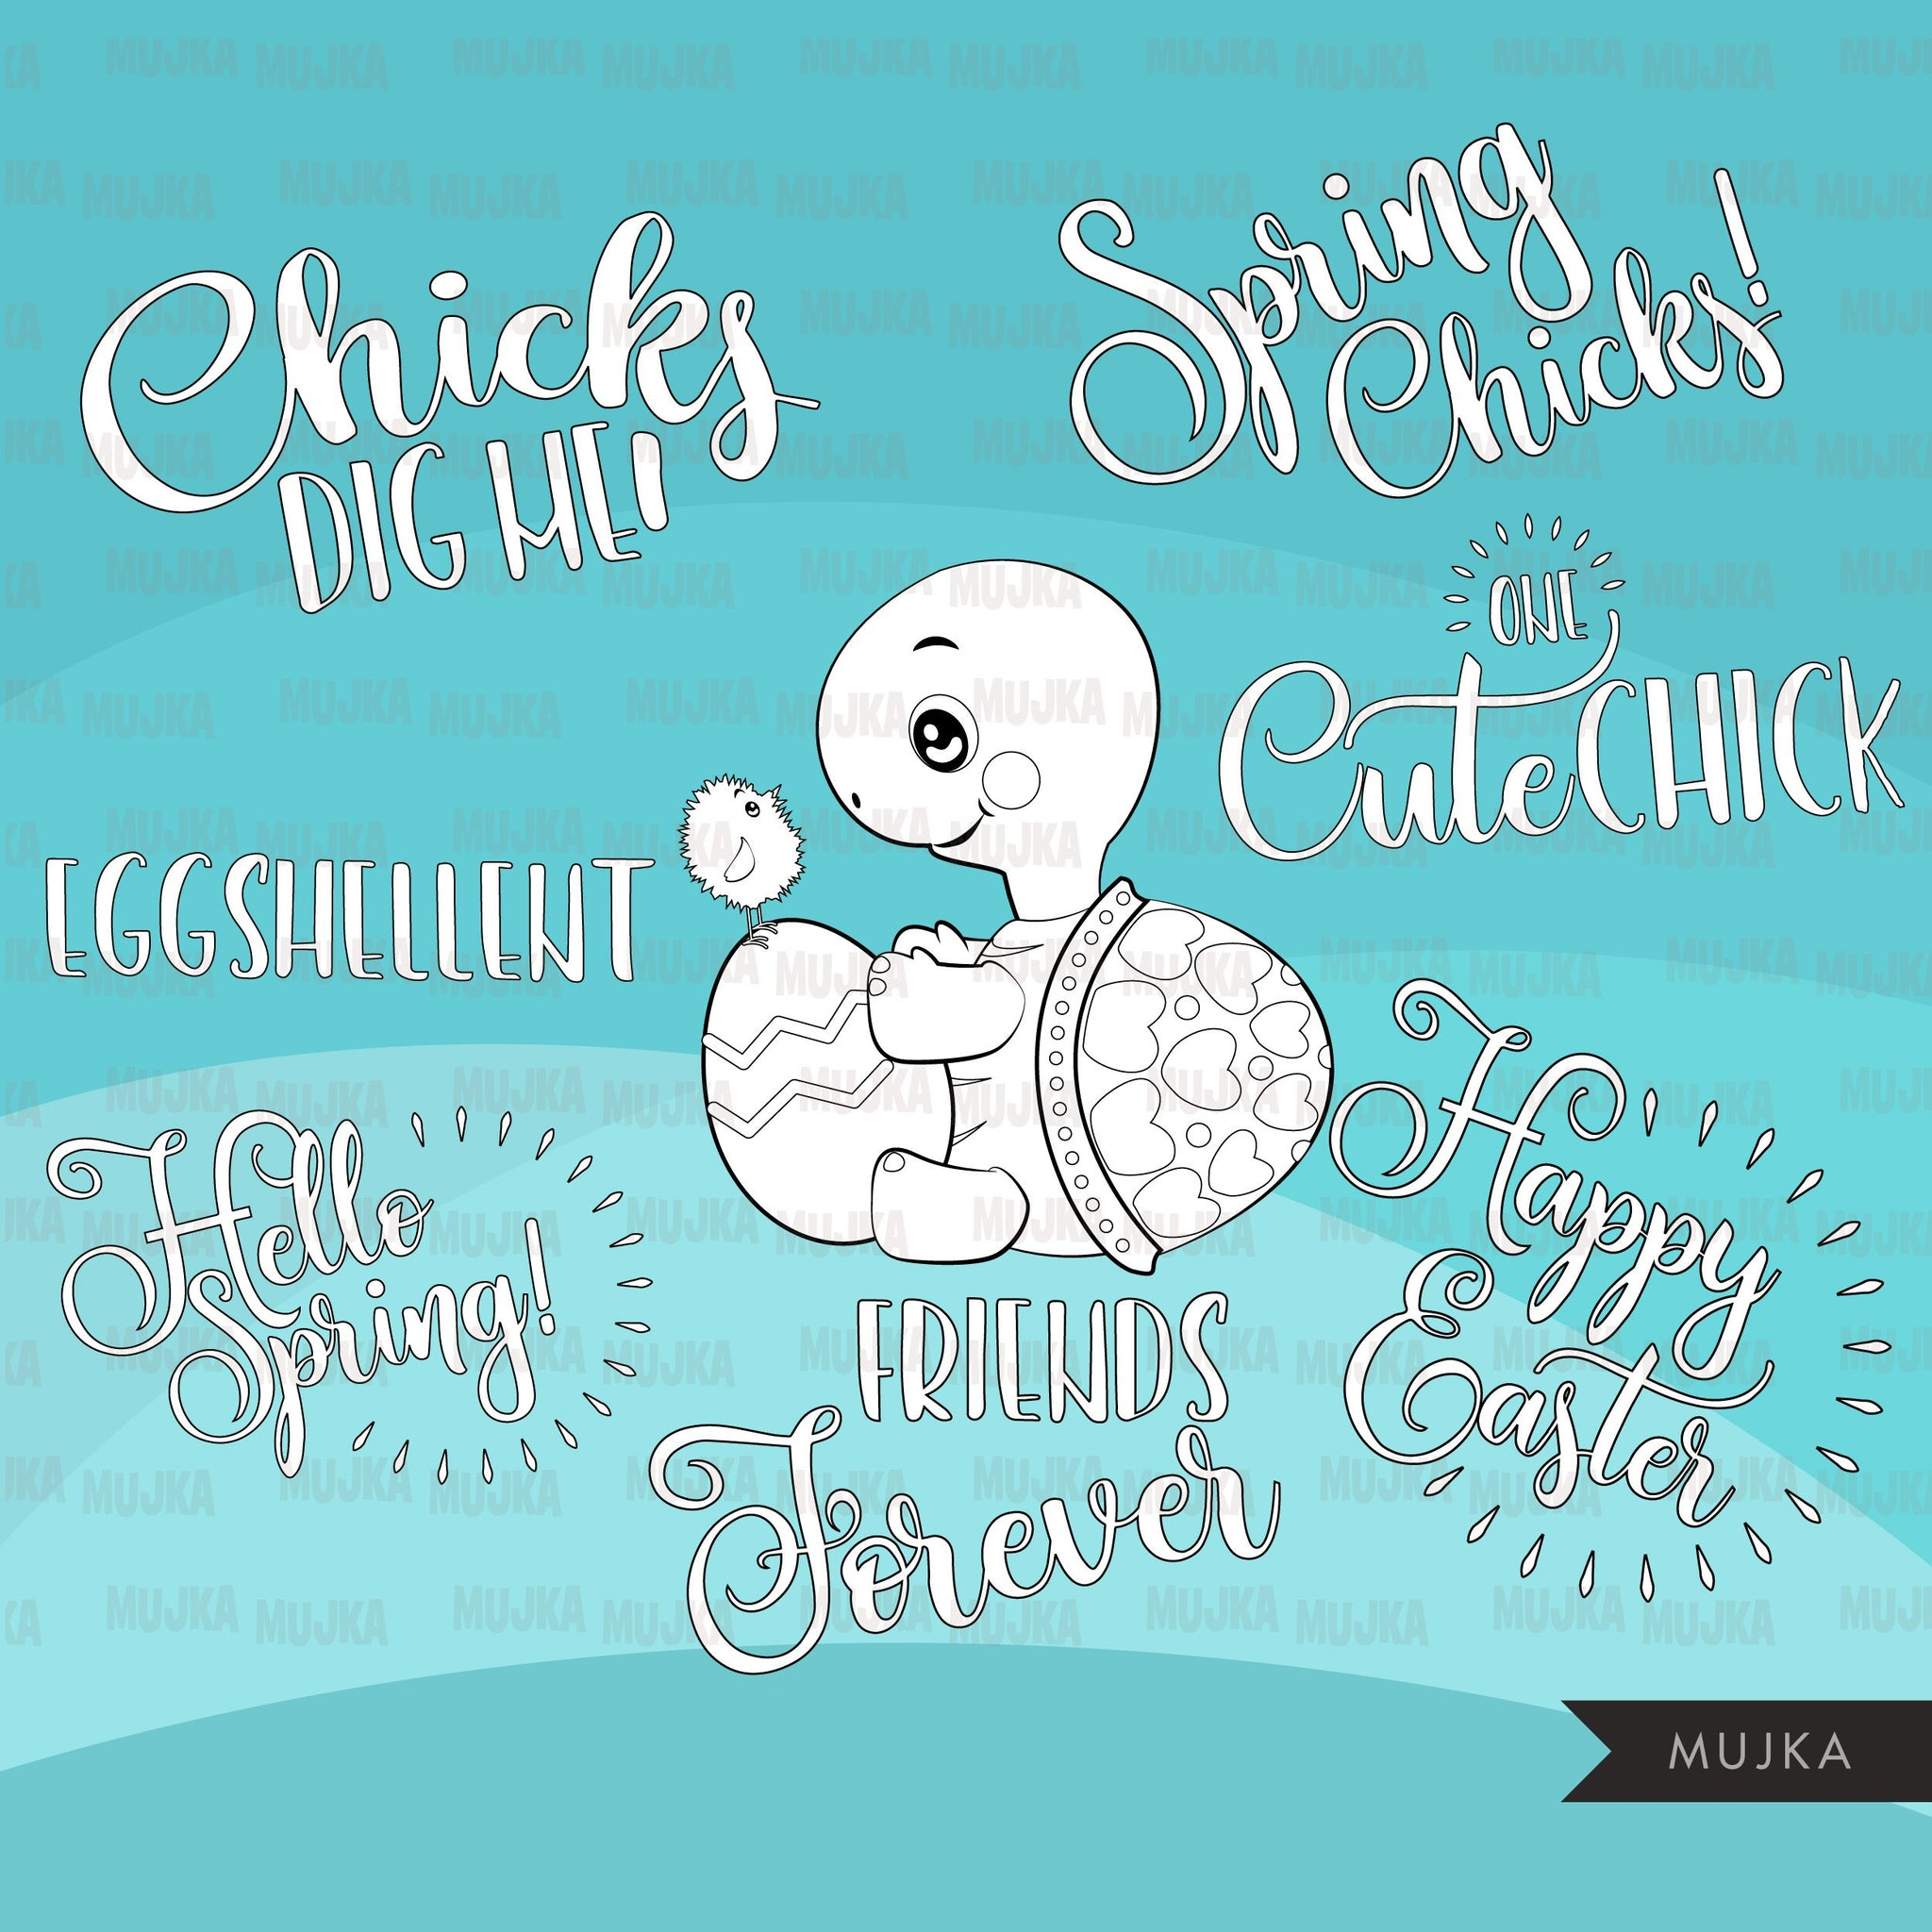 Turtles and Chicks Digital stamps, cute Easter animal graphics, coloring book black and white outline clip art